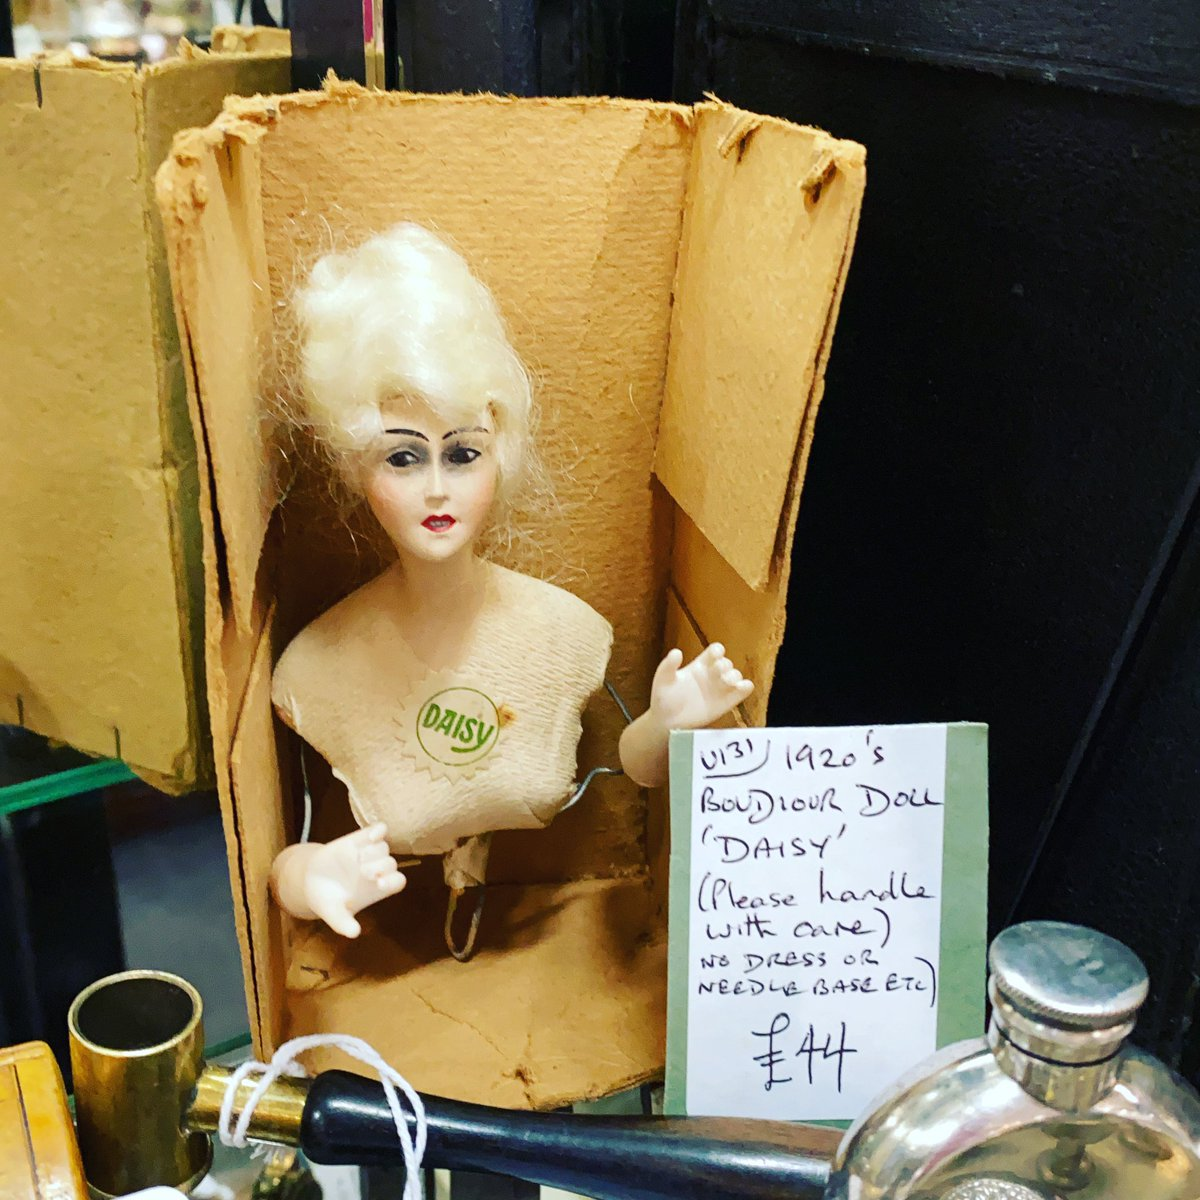 Enjoy your evening and we will be back open 10-5pm tomorrow. #boudoir #boudoirdoll #1920s #astraantiquescentre #hemswell #lincolnshire https://t.co/DBpZNYyEio